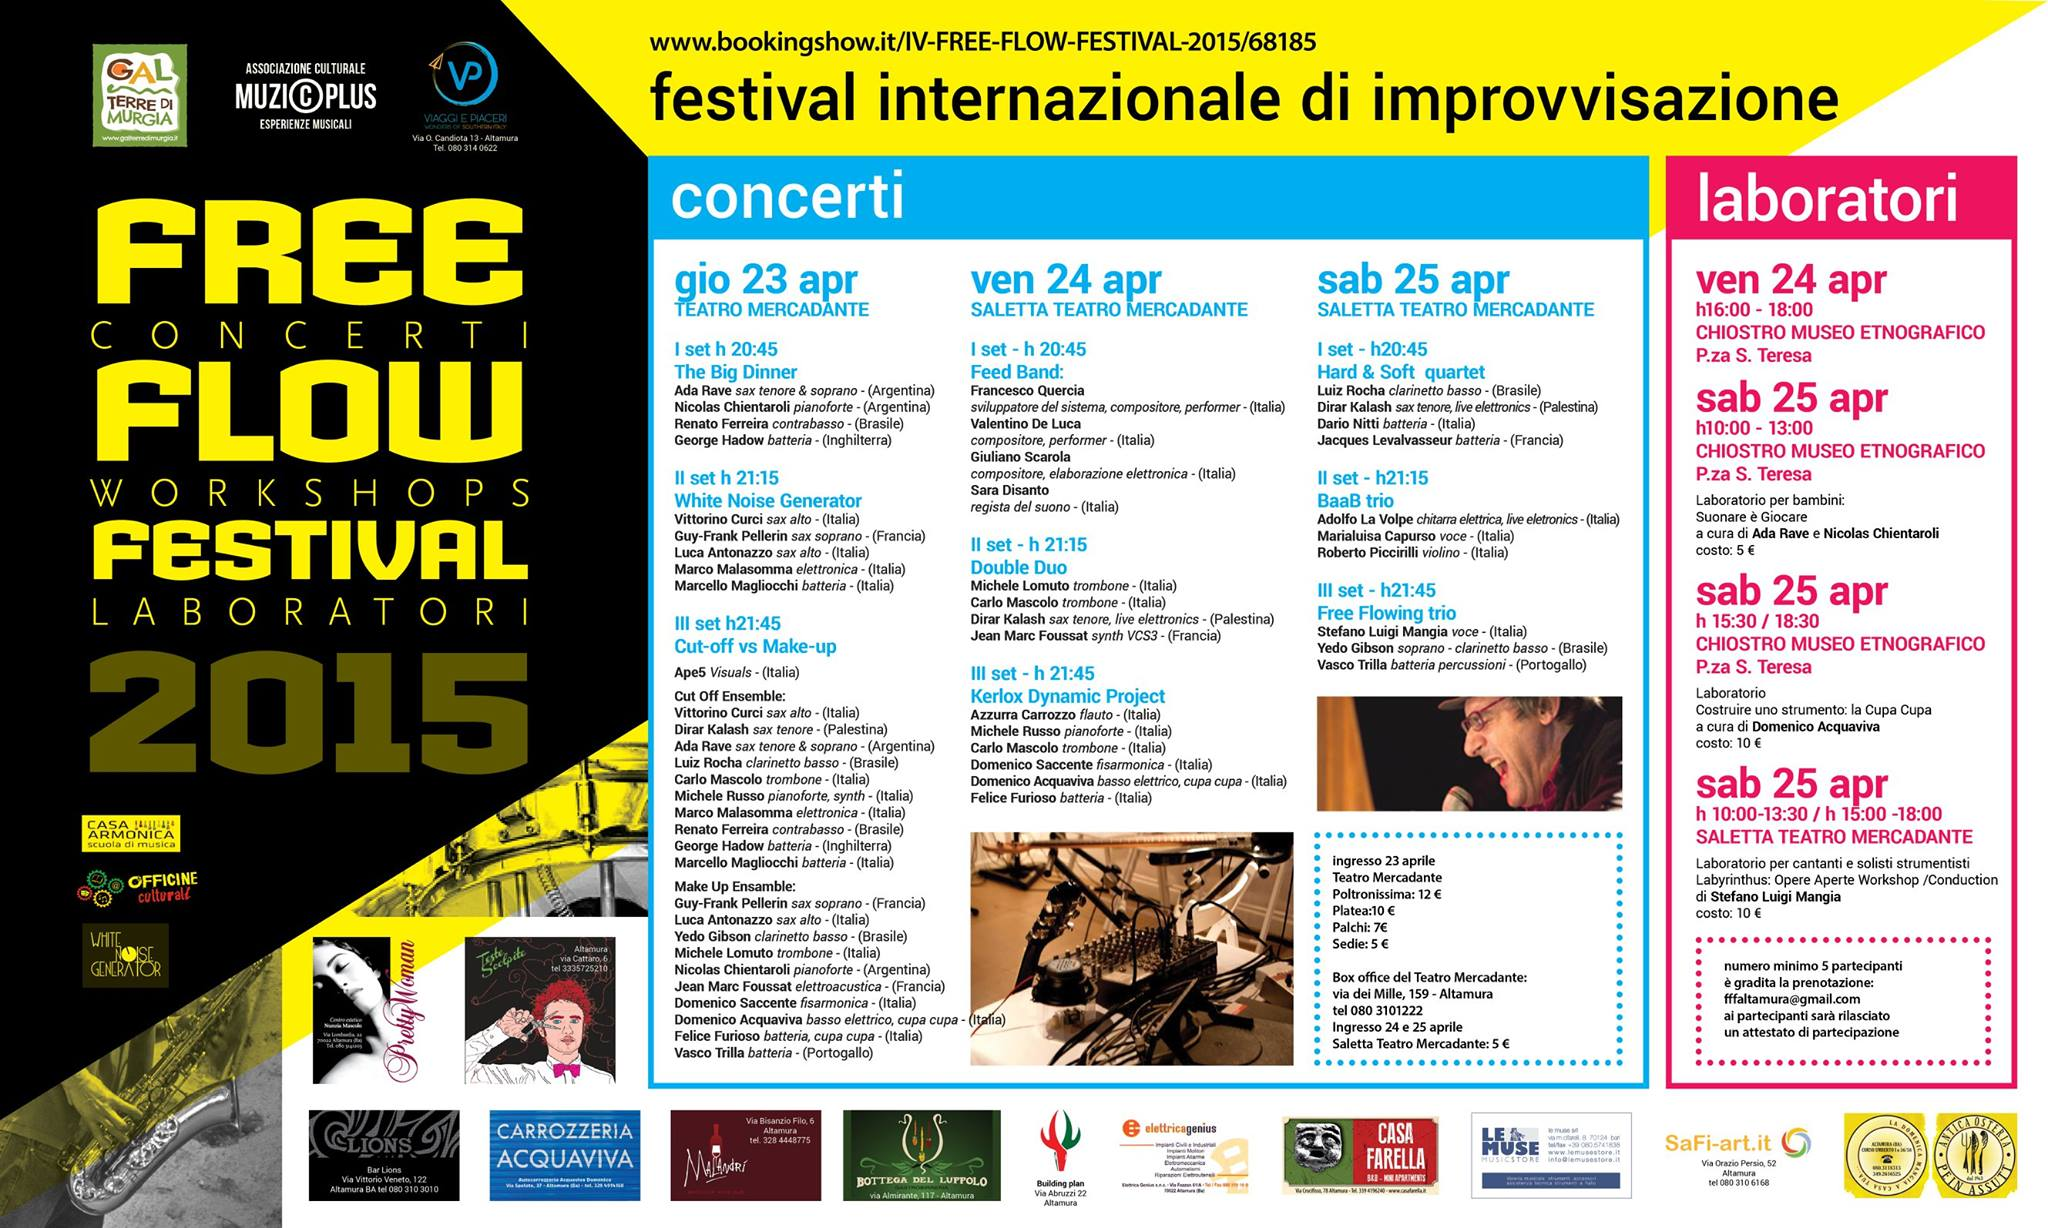 IV Free Flow Festival - program